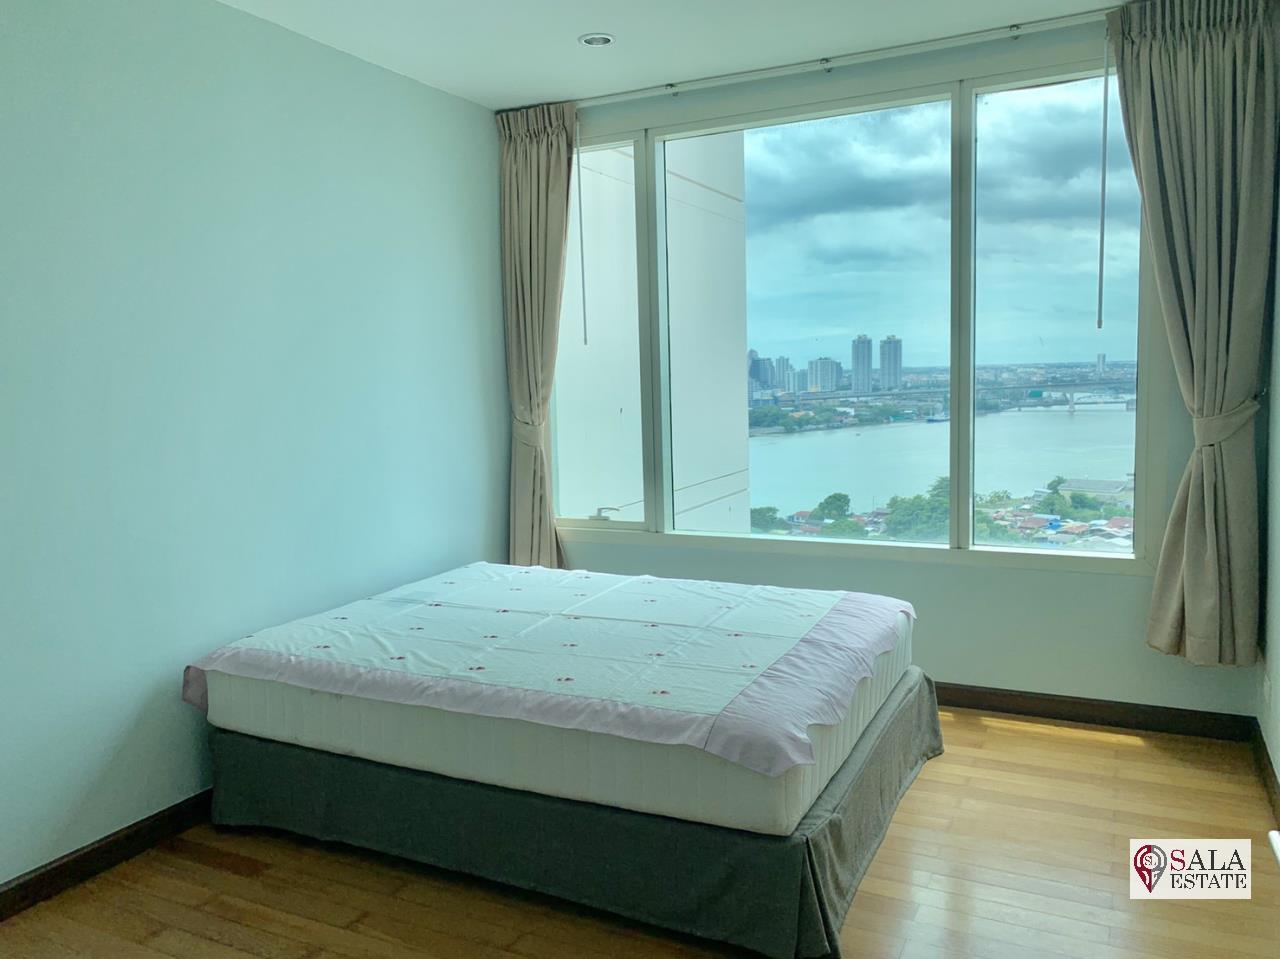 SALA ESTATE Agency's WATERMARK CHAOPHRAYA RIVER – RIVERSIDE-NEAR ICON SIAM,豪华公寓,河景房, 2卧2卫,家具齐全 4